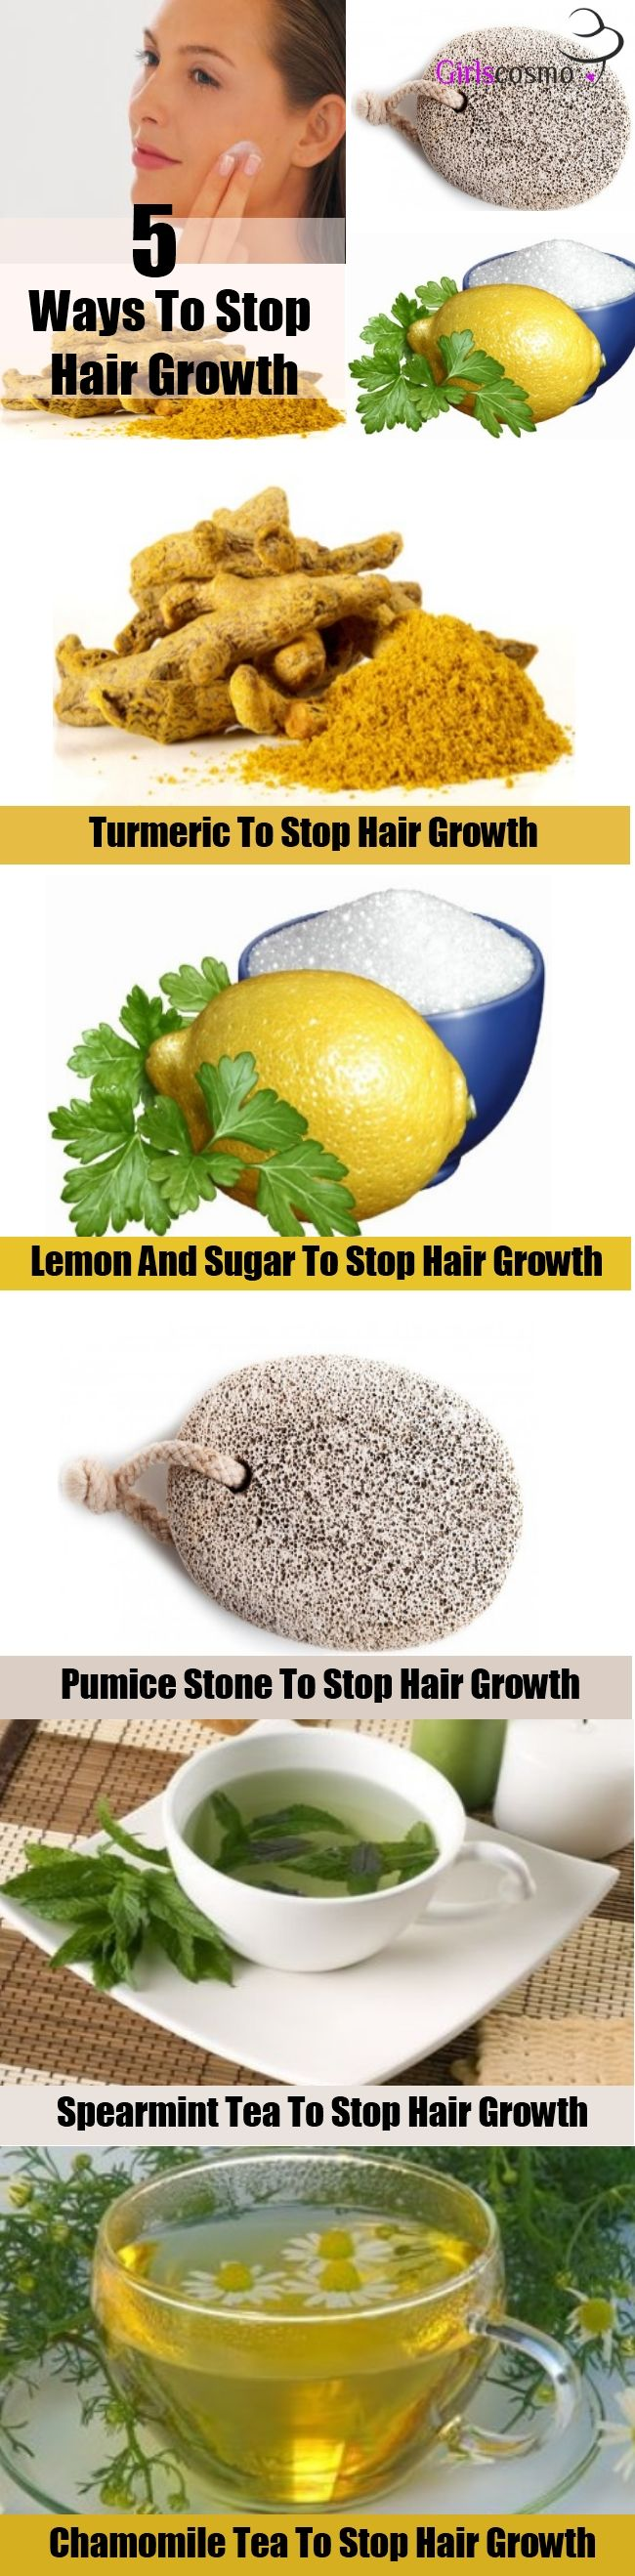 5 Natural Ways To Stop Hair Growth